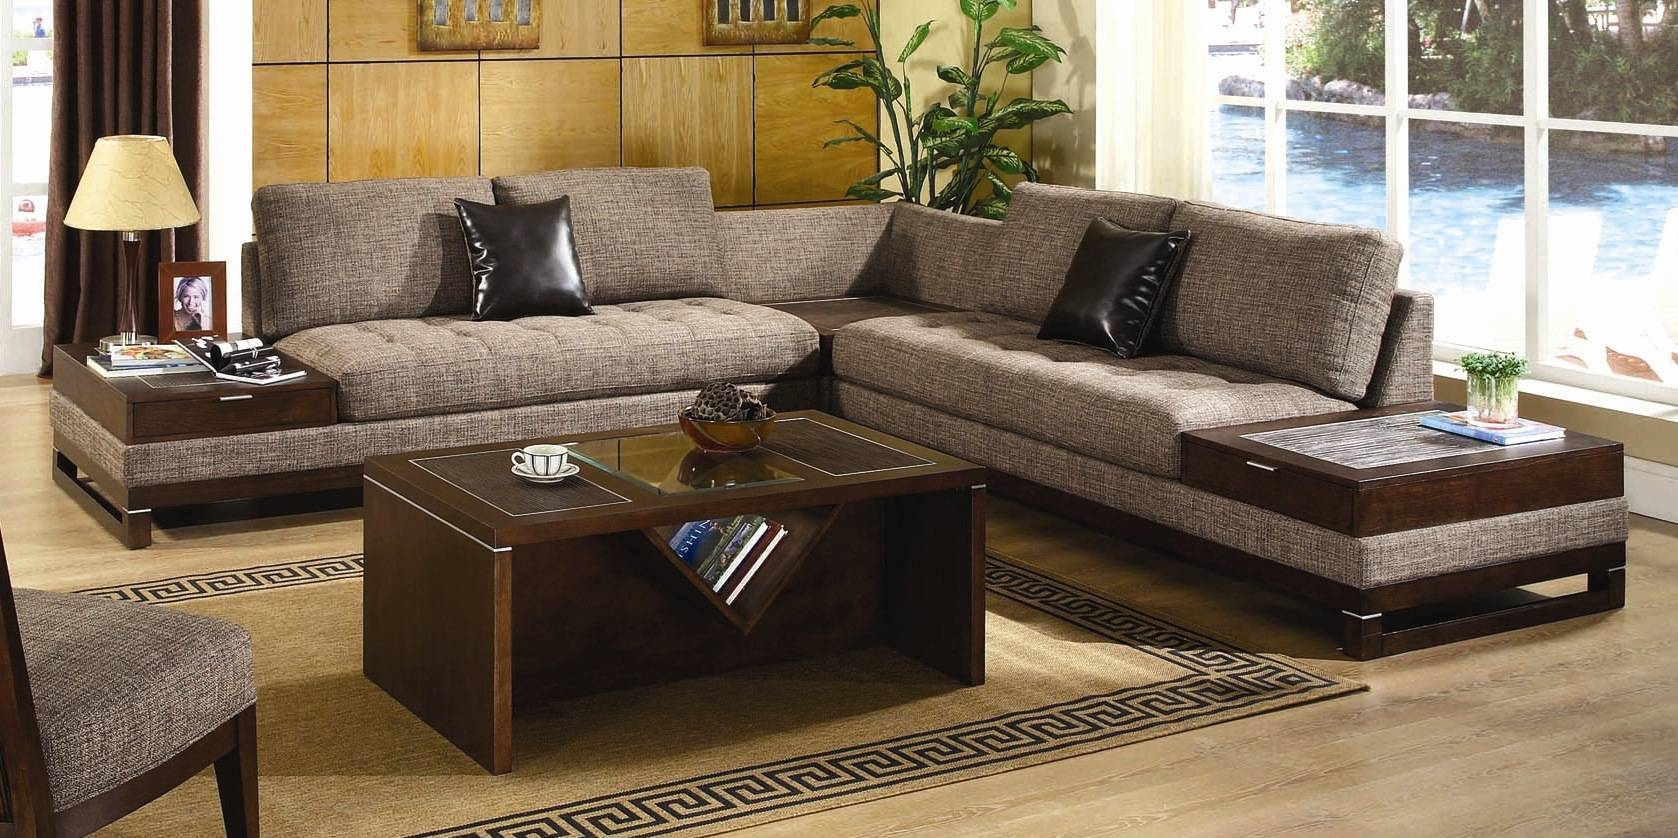 Astonishing Cheap Living Room Sets Under 500 Manificent Decoration regarding Living Room Sofa Chairs (Image 1 of 15)